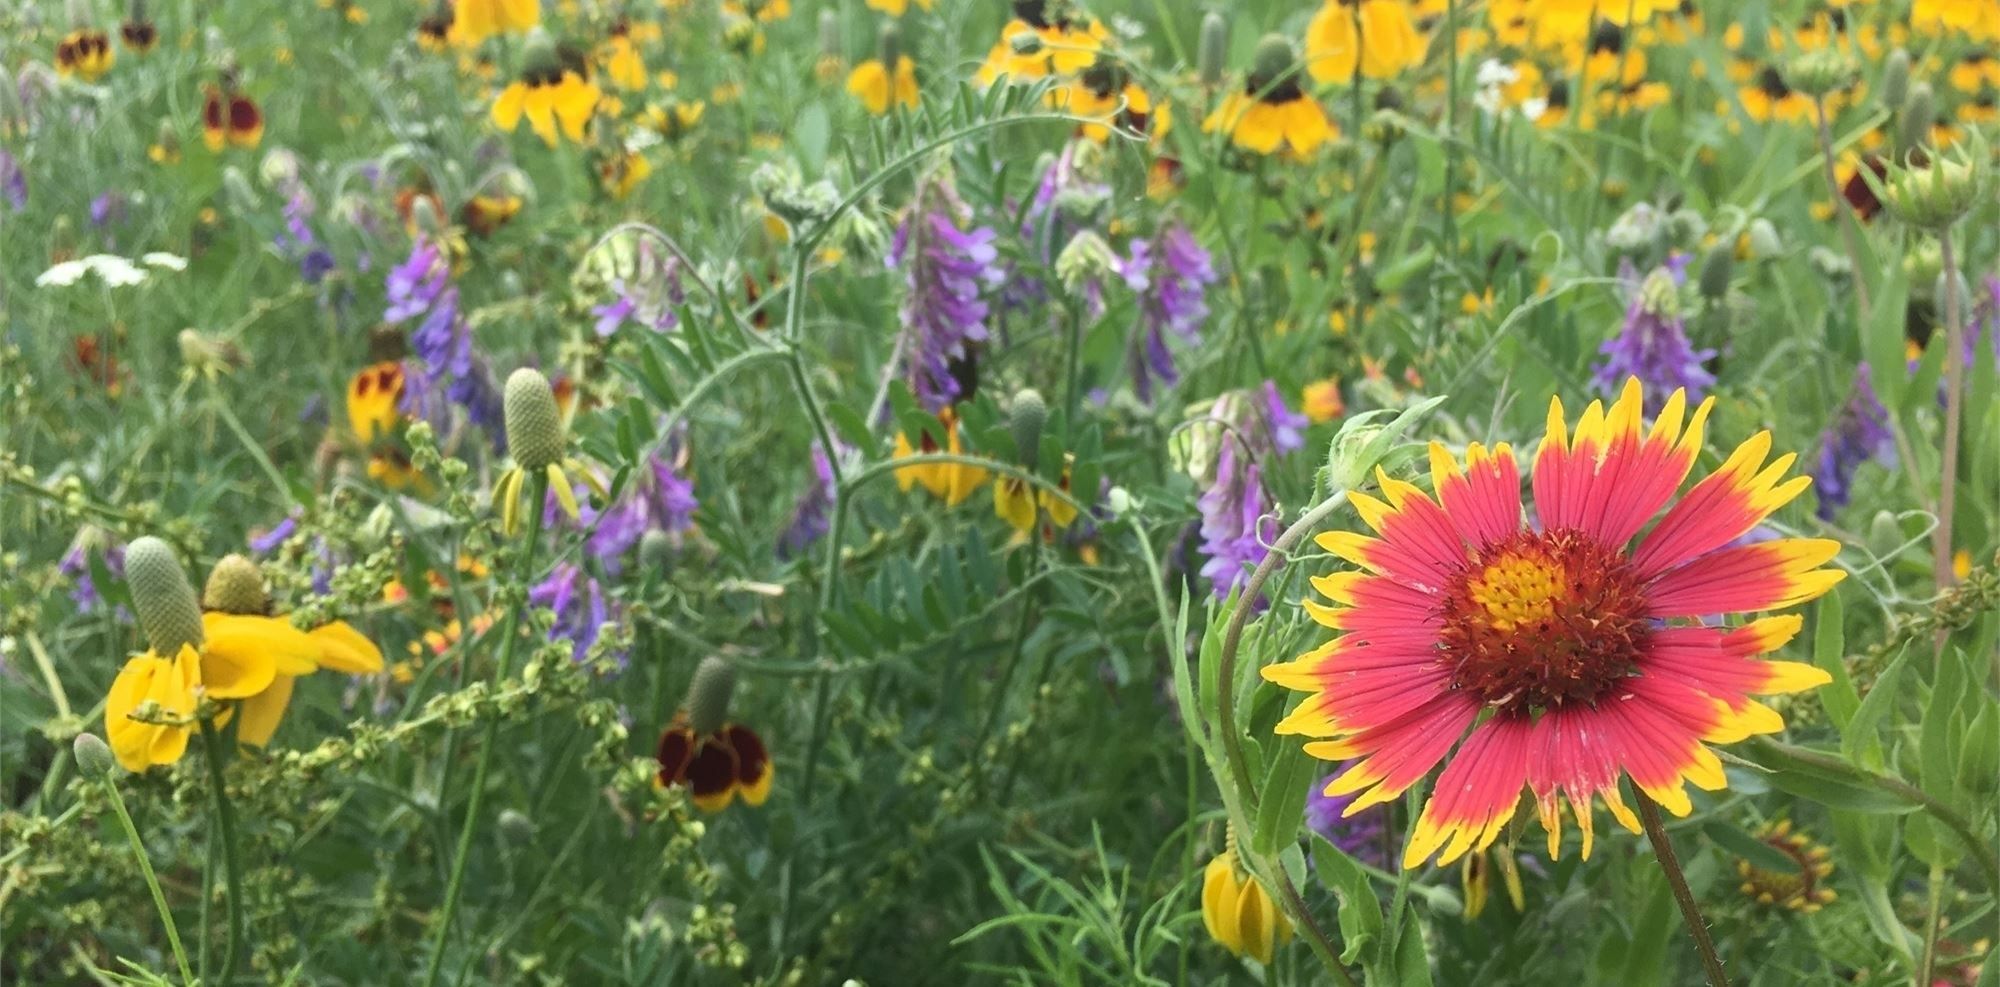 a field of brightly colored wildflowers